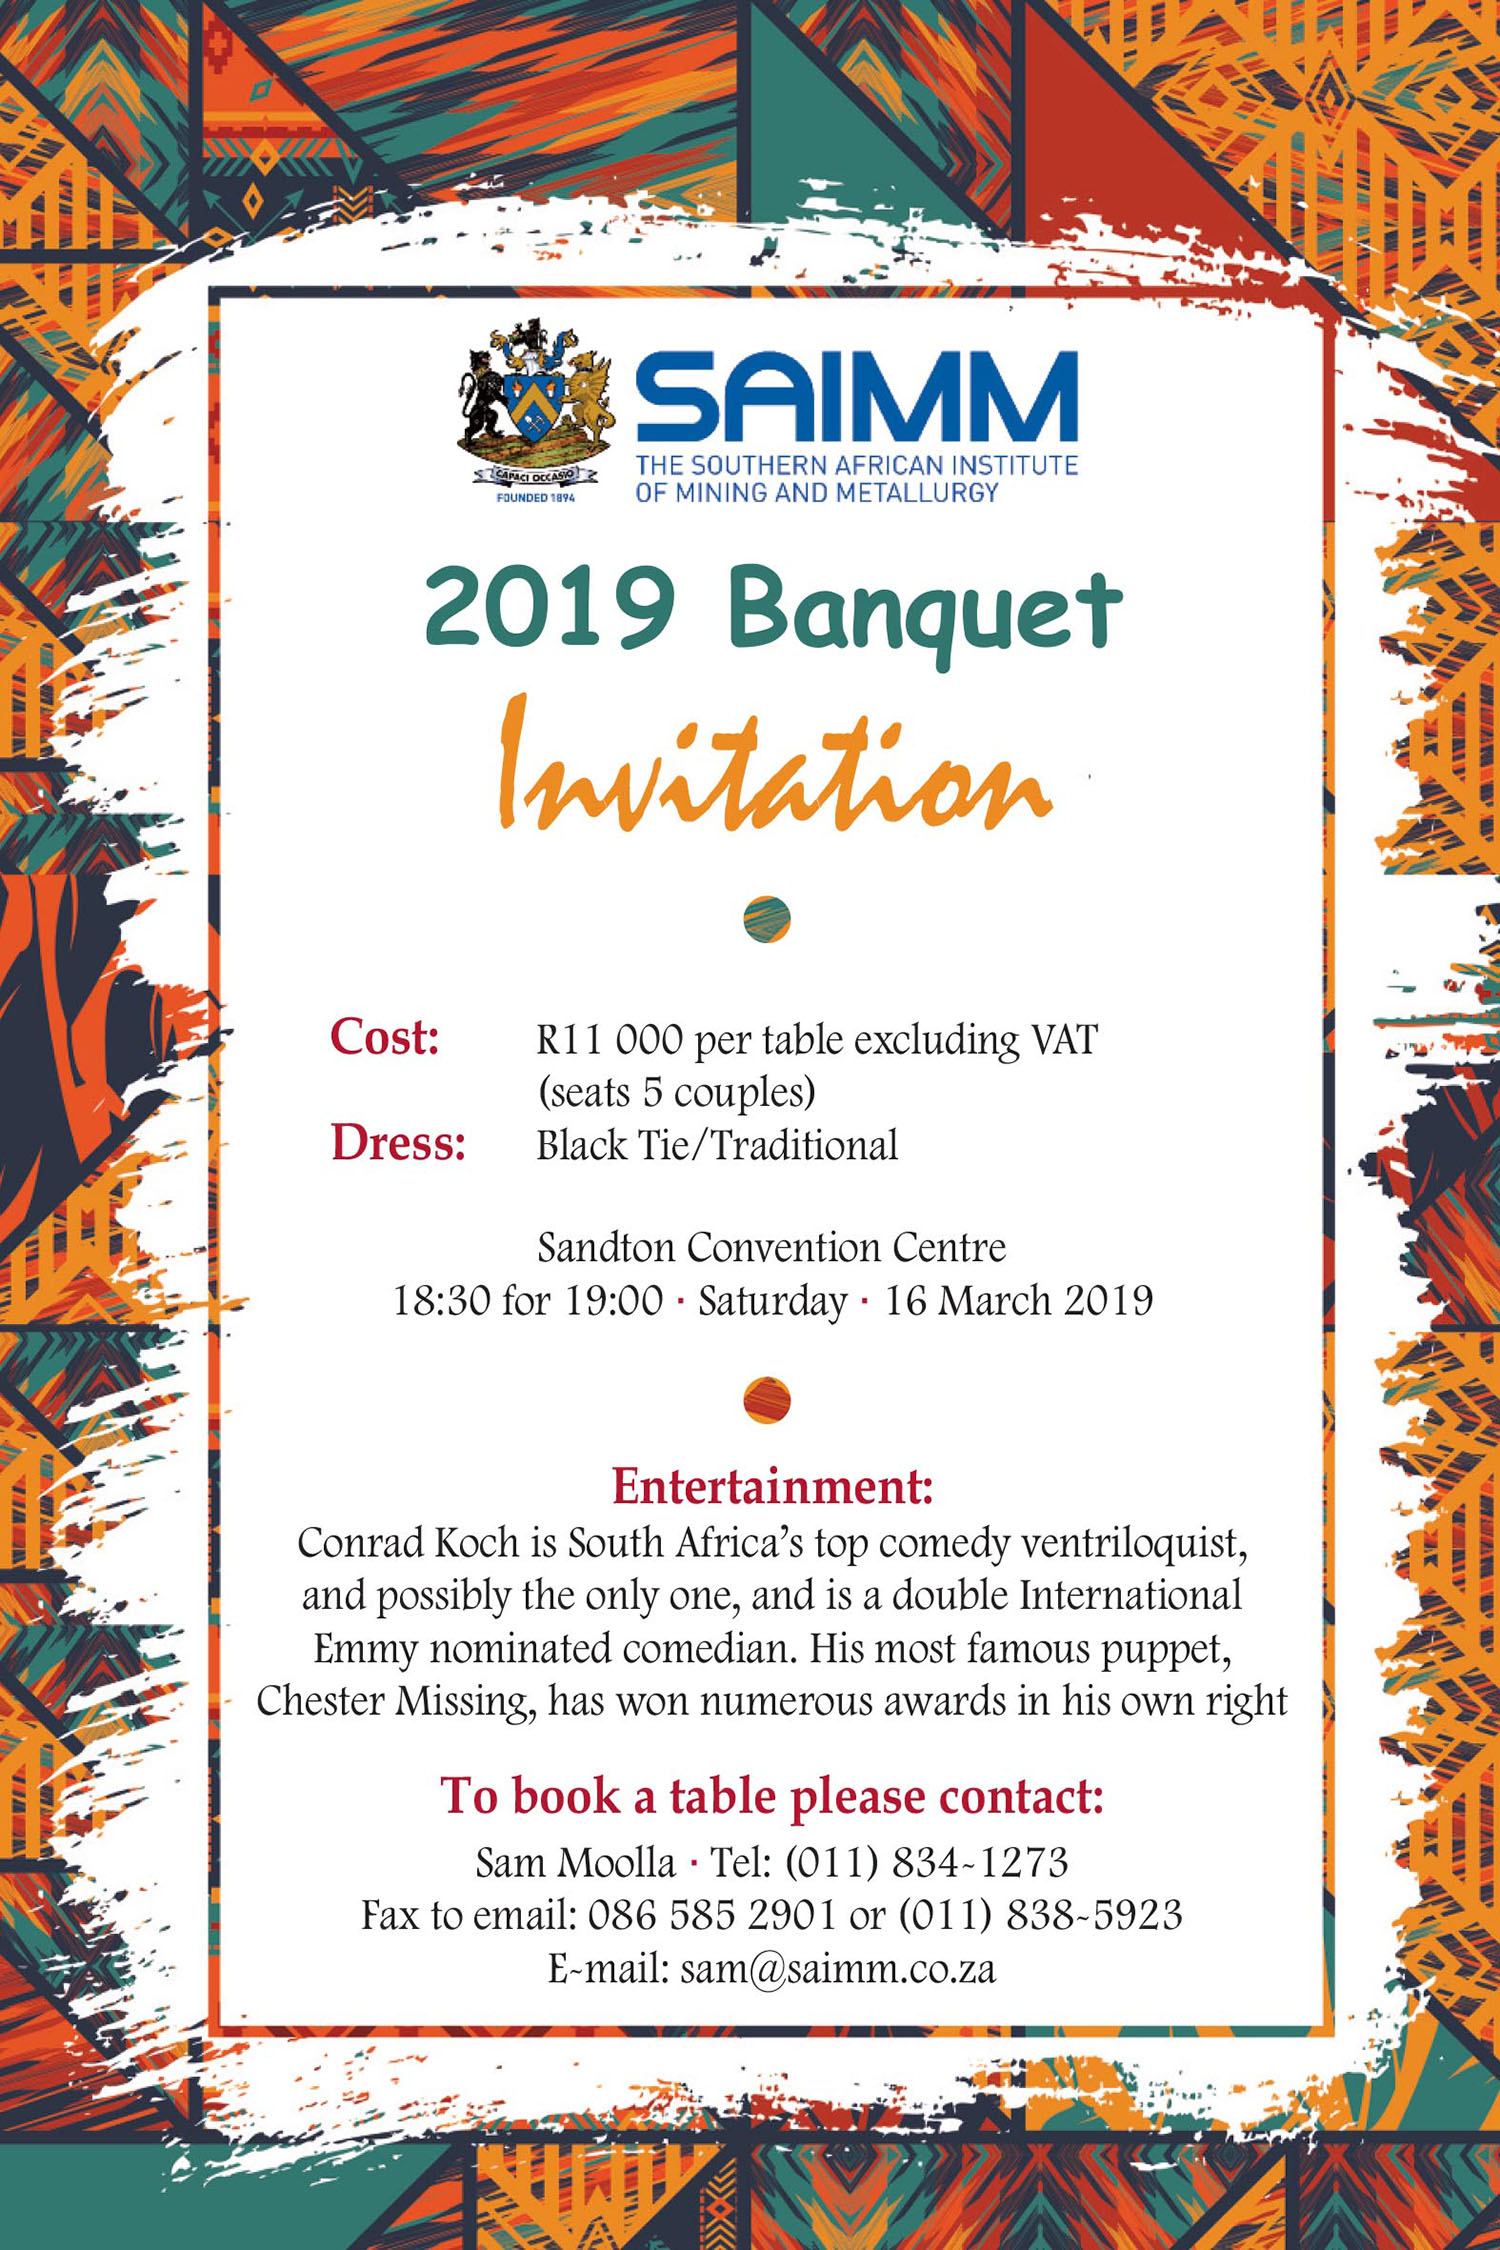 SAIMM Banquet Invitation